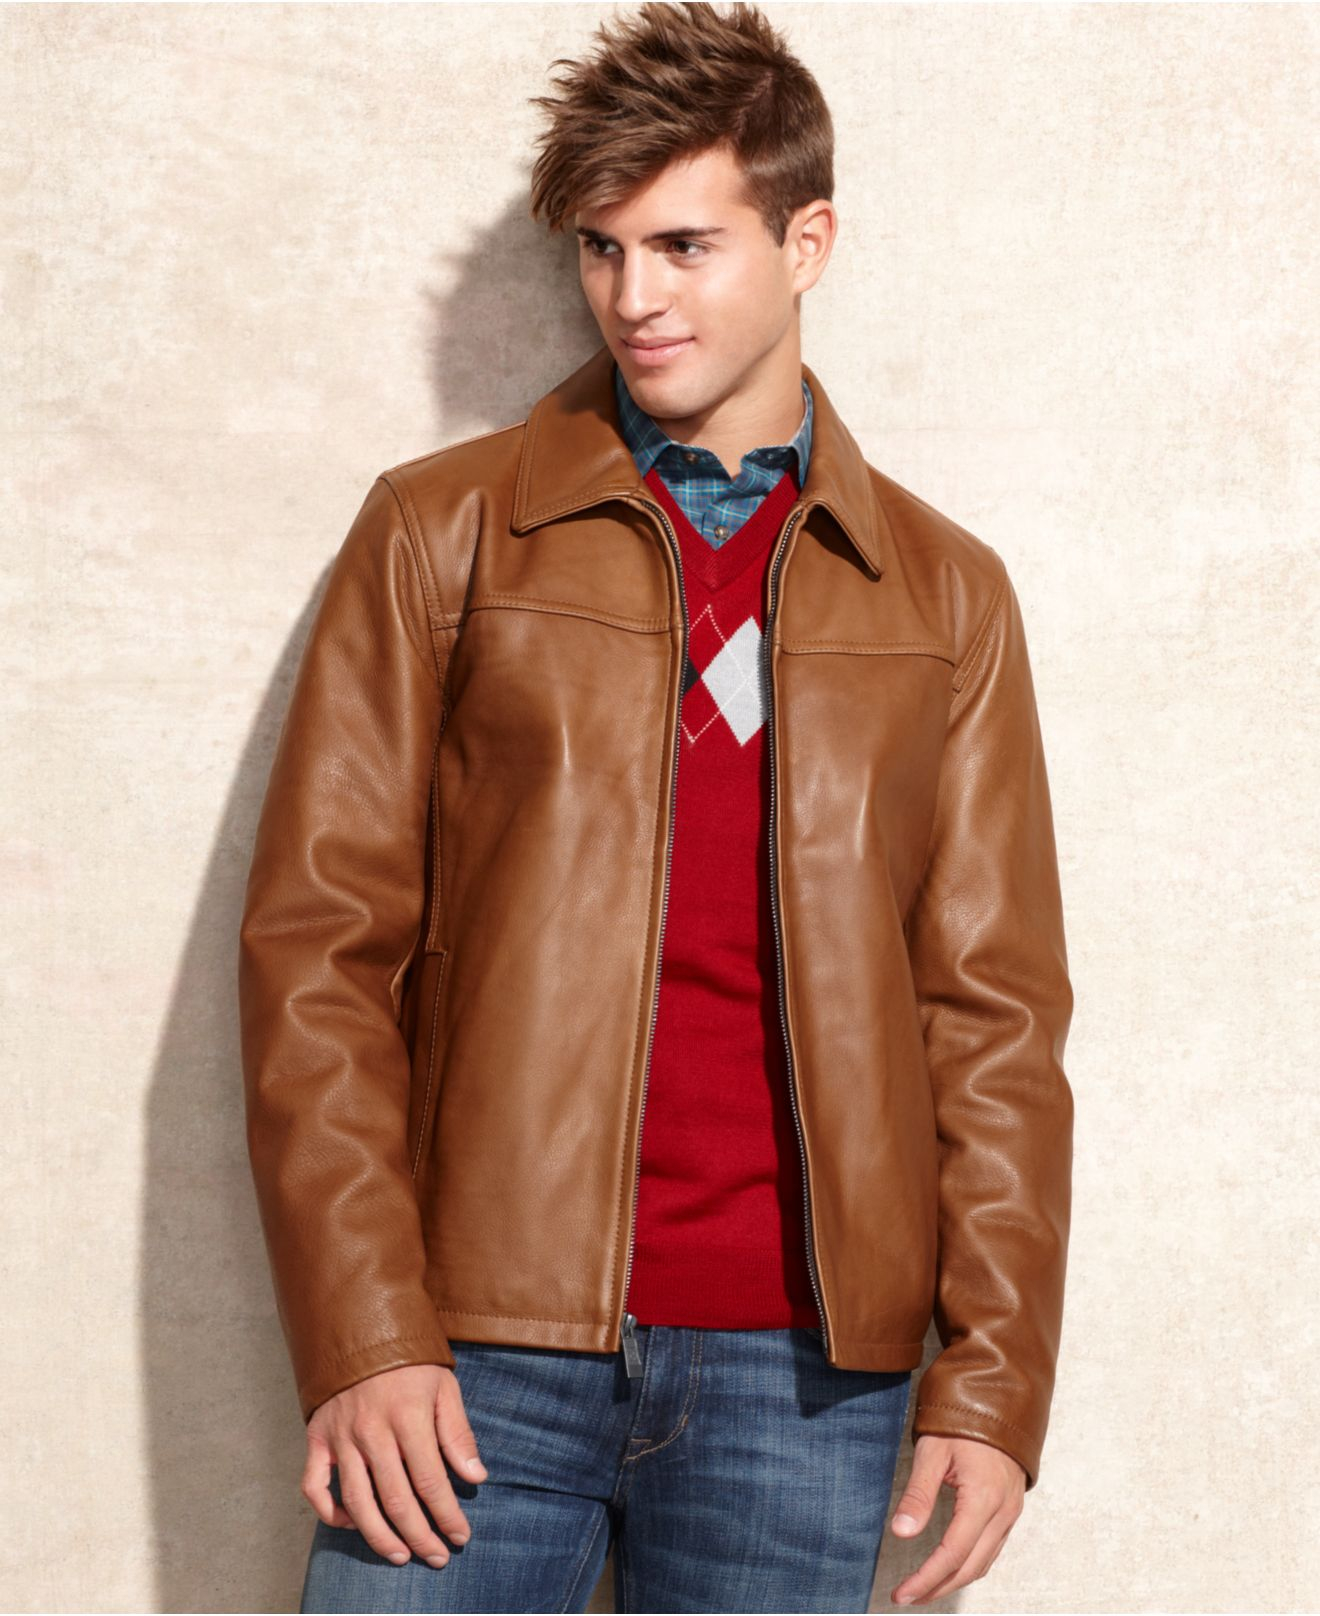 Vince Camuto Leather Jacket In Brown For Men Lyst